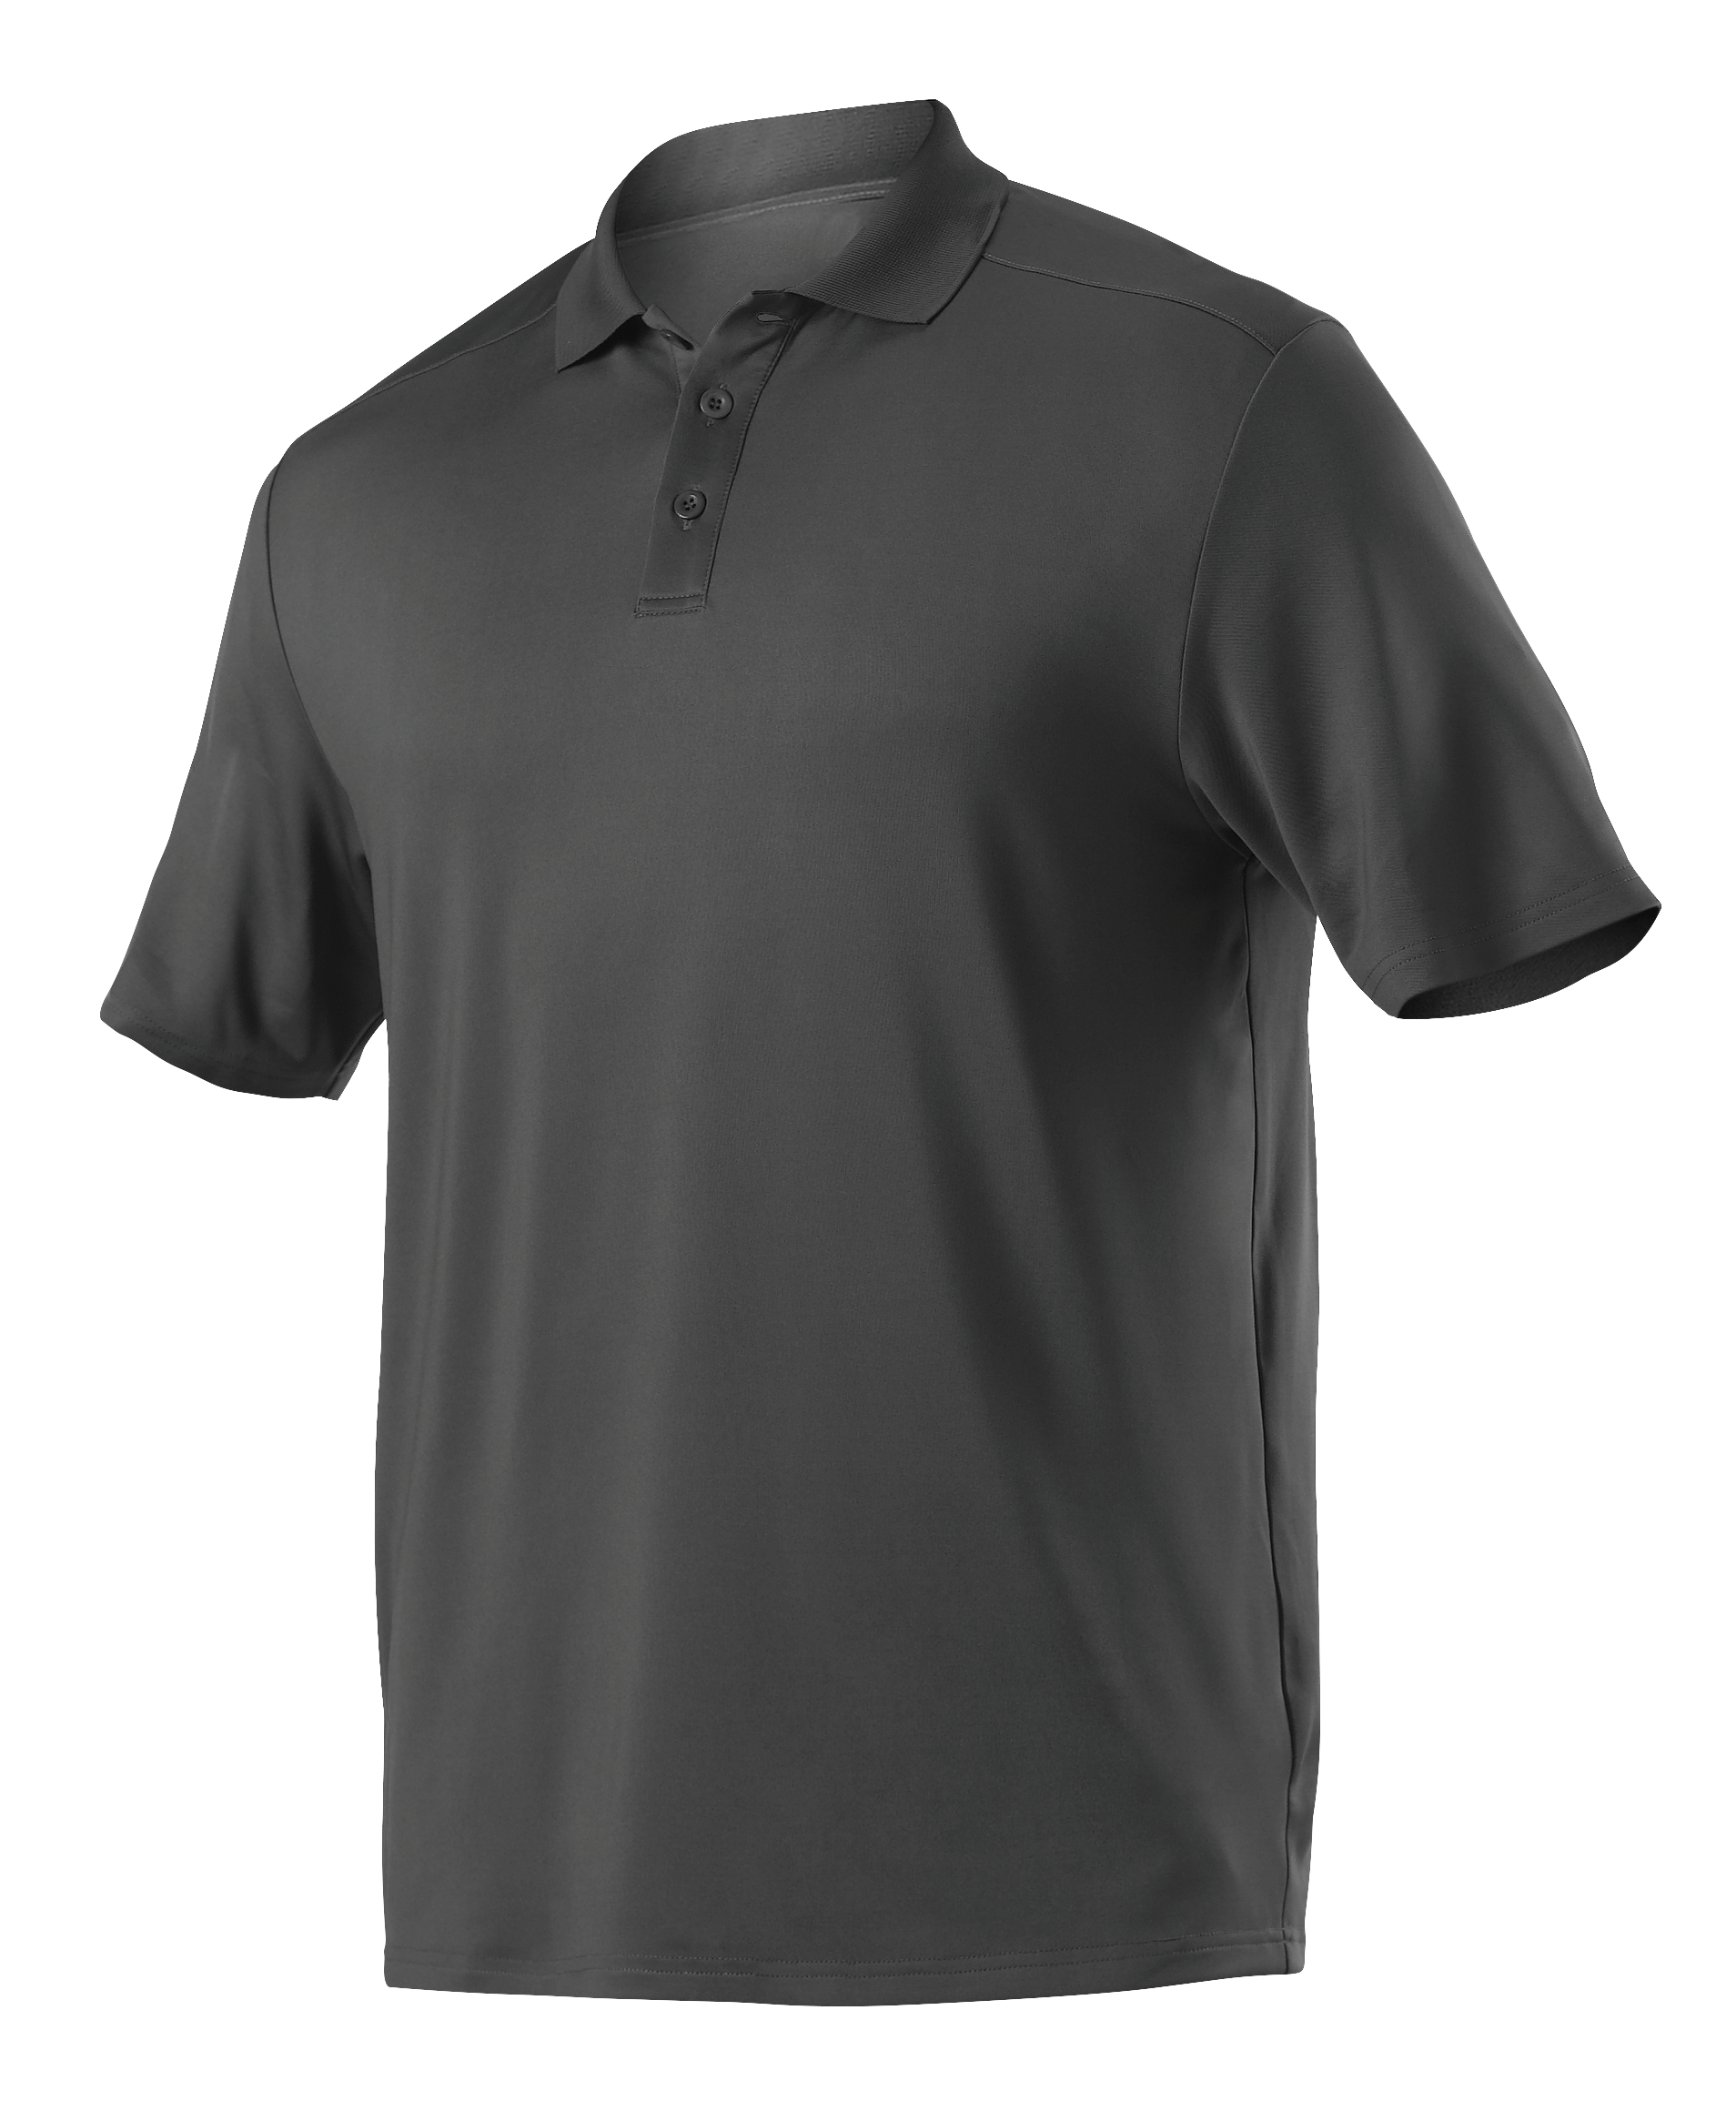 Womens Gameday Polo - Charcoal Solid